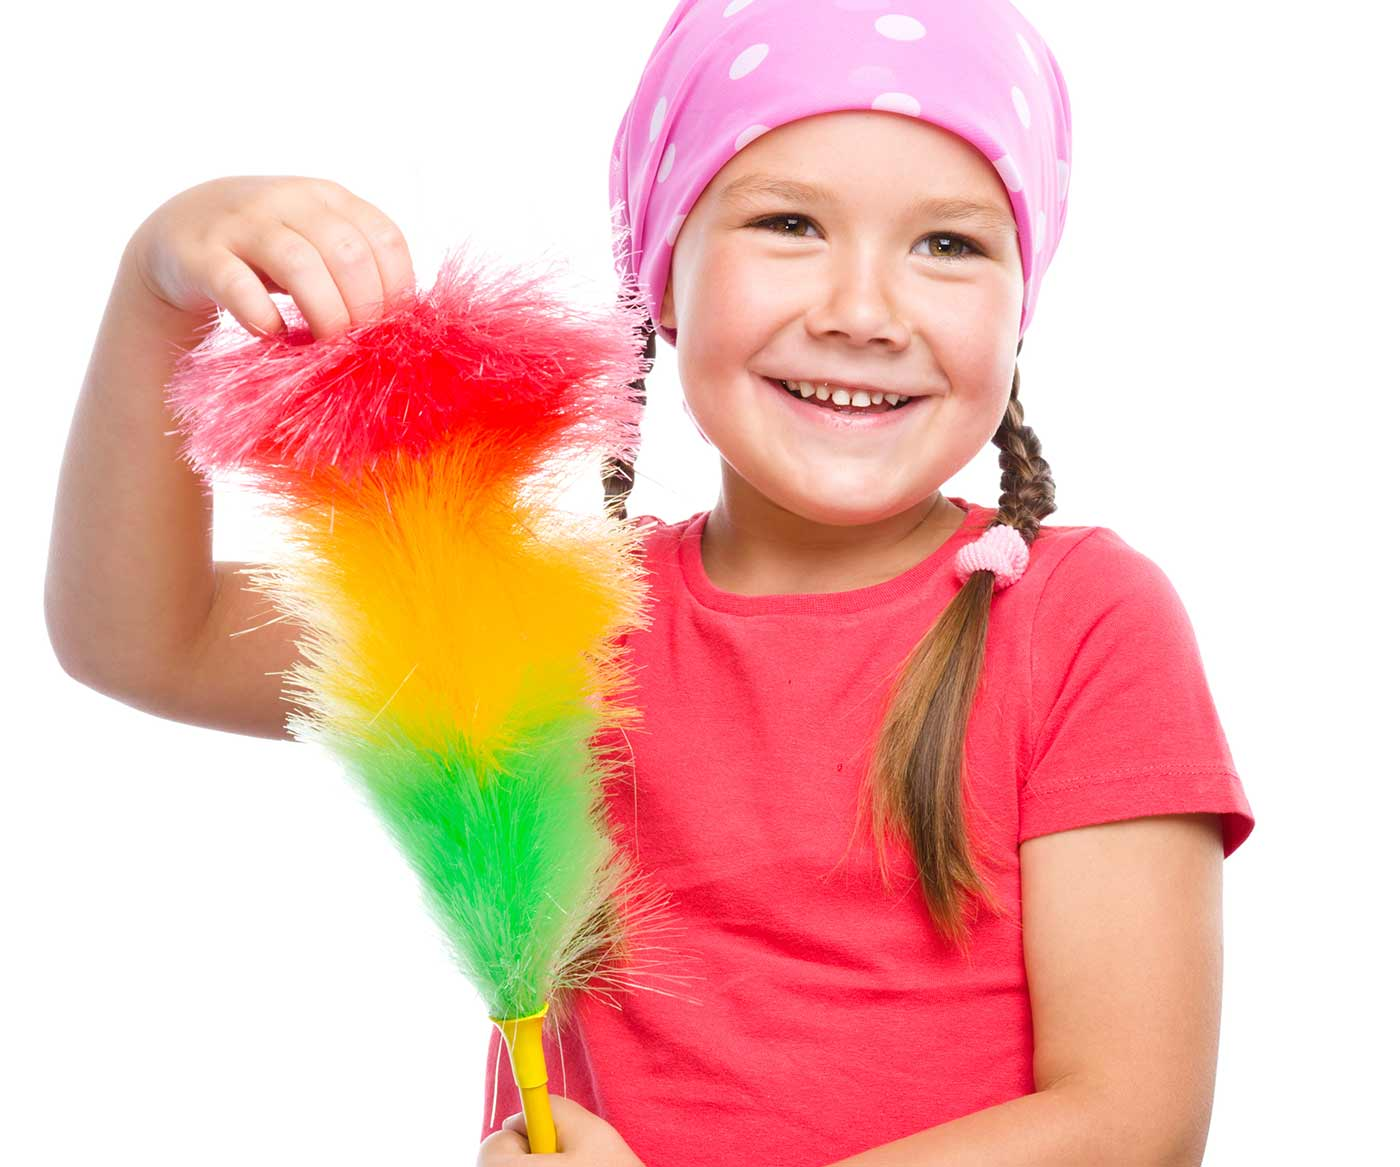 How to get kids to do chores: Little girl holding cleaning supplies